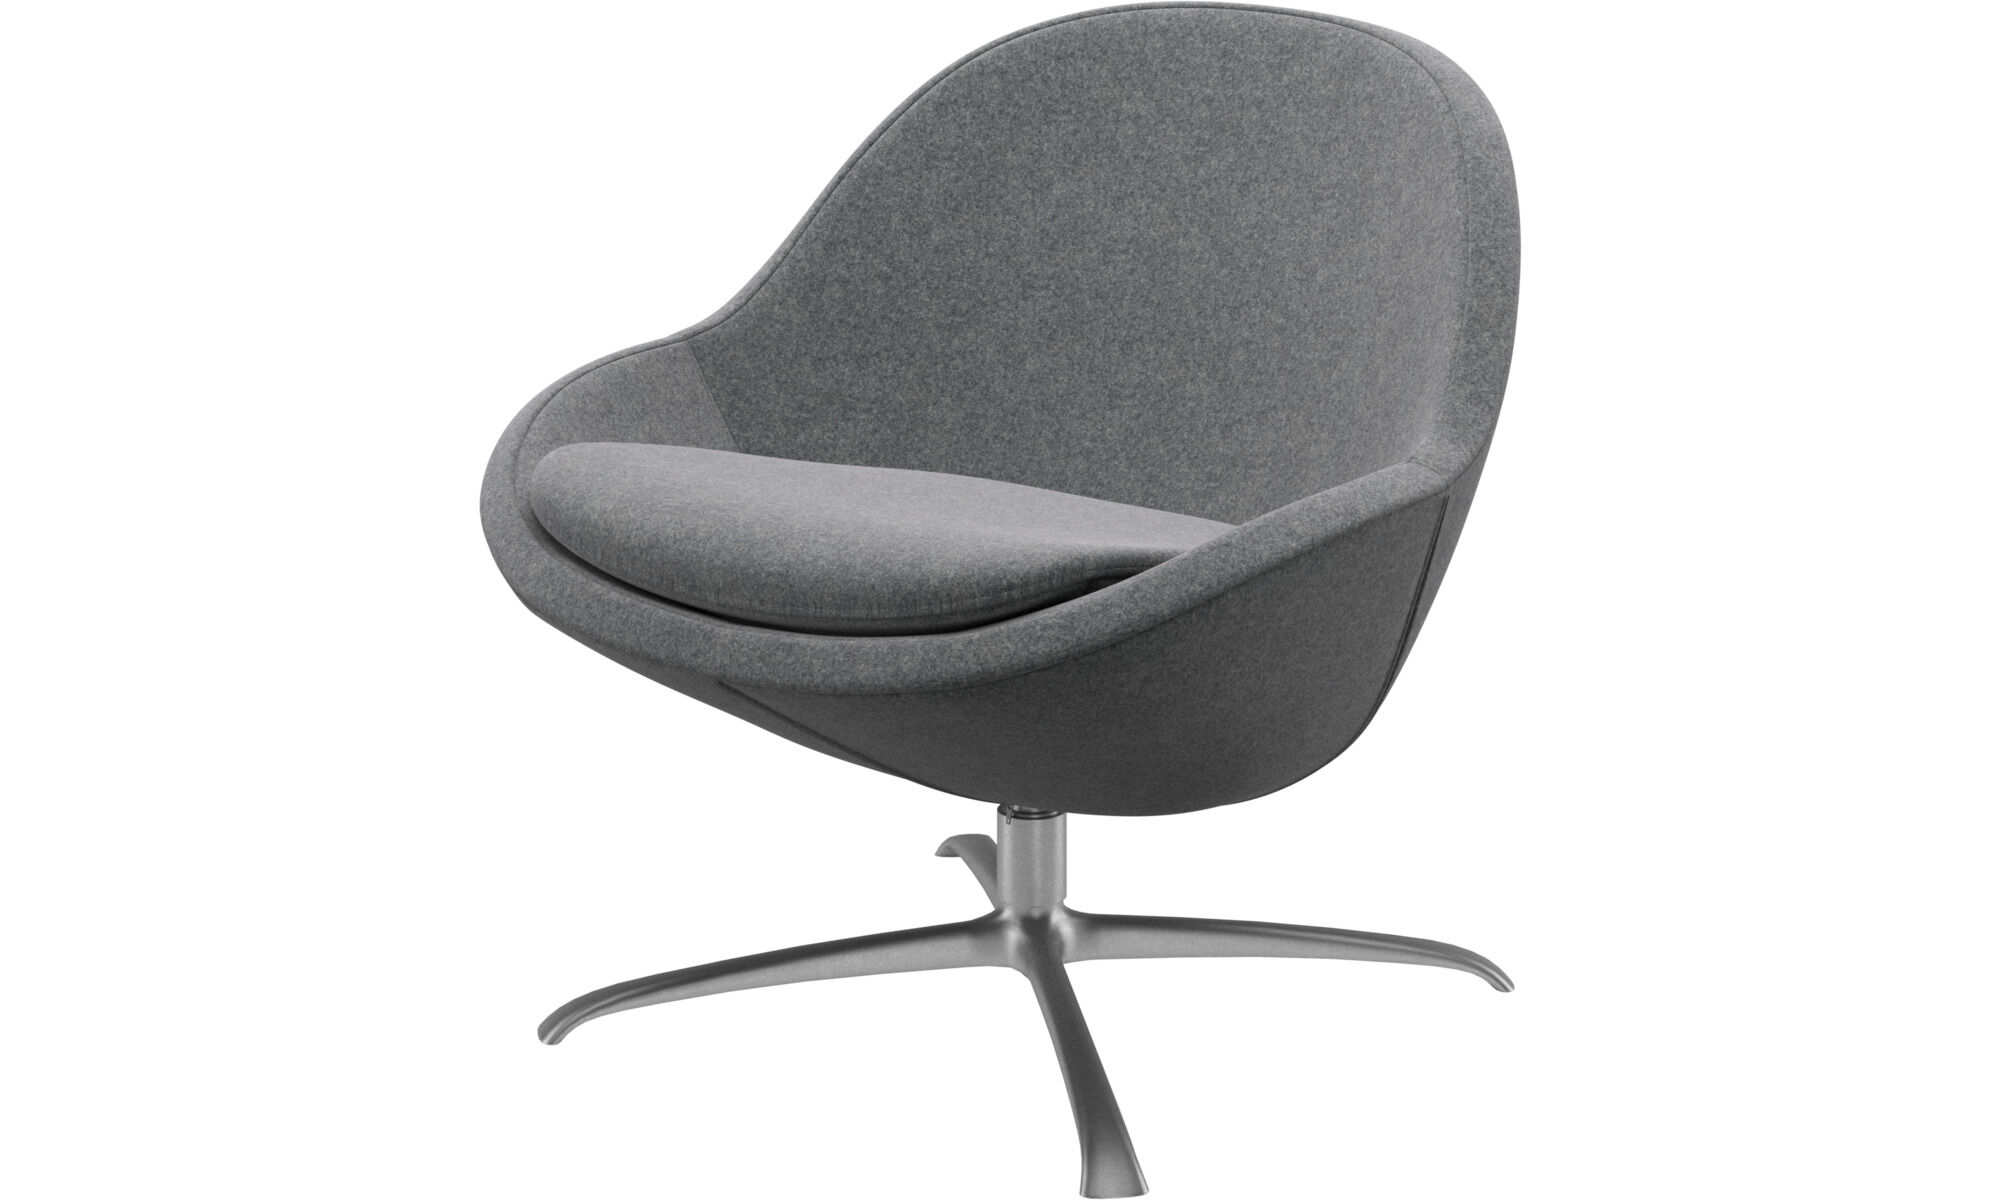 Delicieux Designs By Frans Schrofer   Veneto Chair With Swivel Function   Gray    Fabric ...